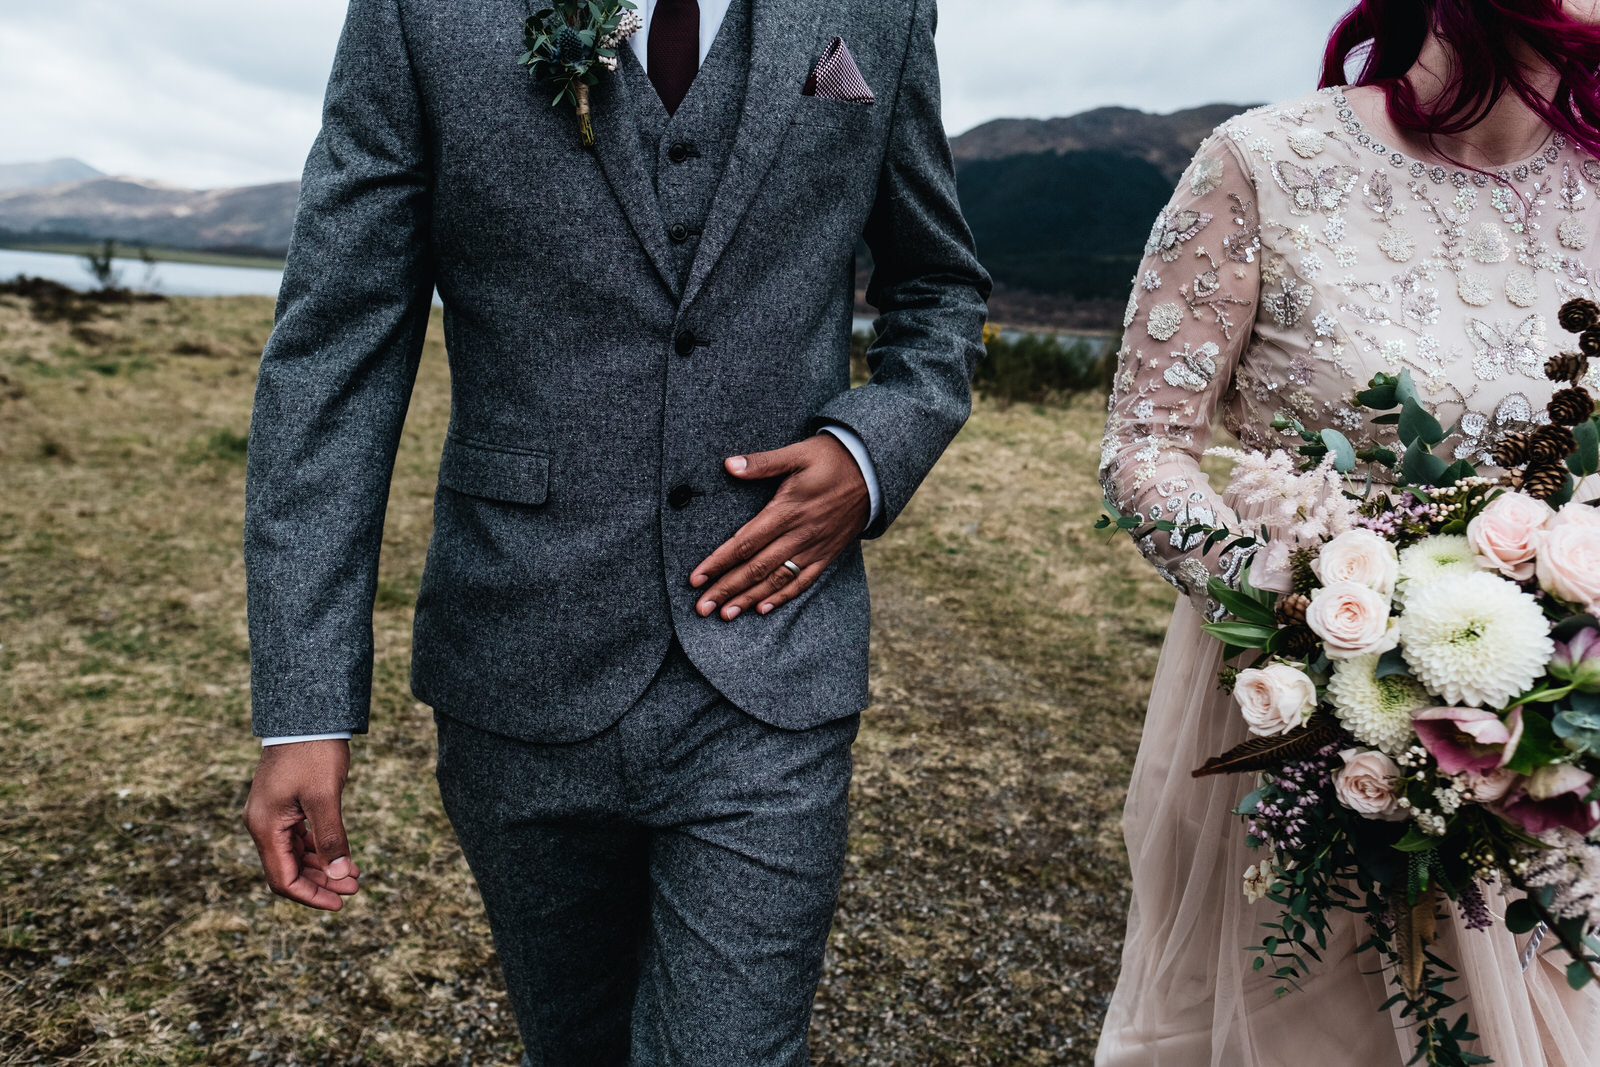 A groom walks alongside his bride who is carrying her flowers.